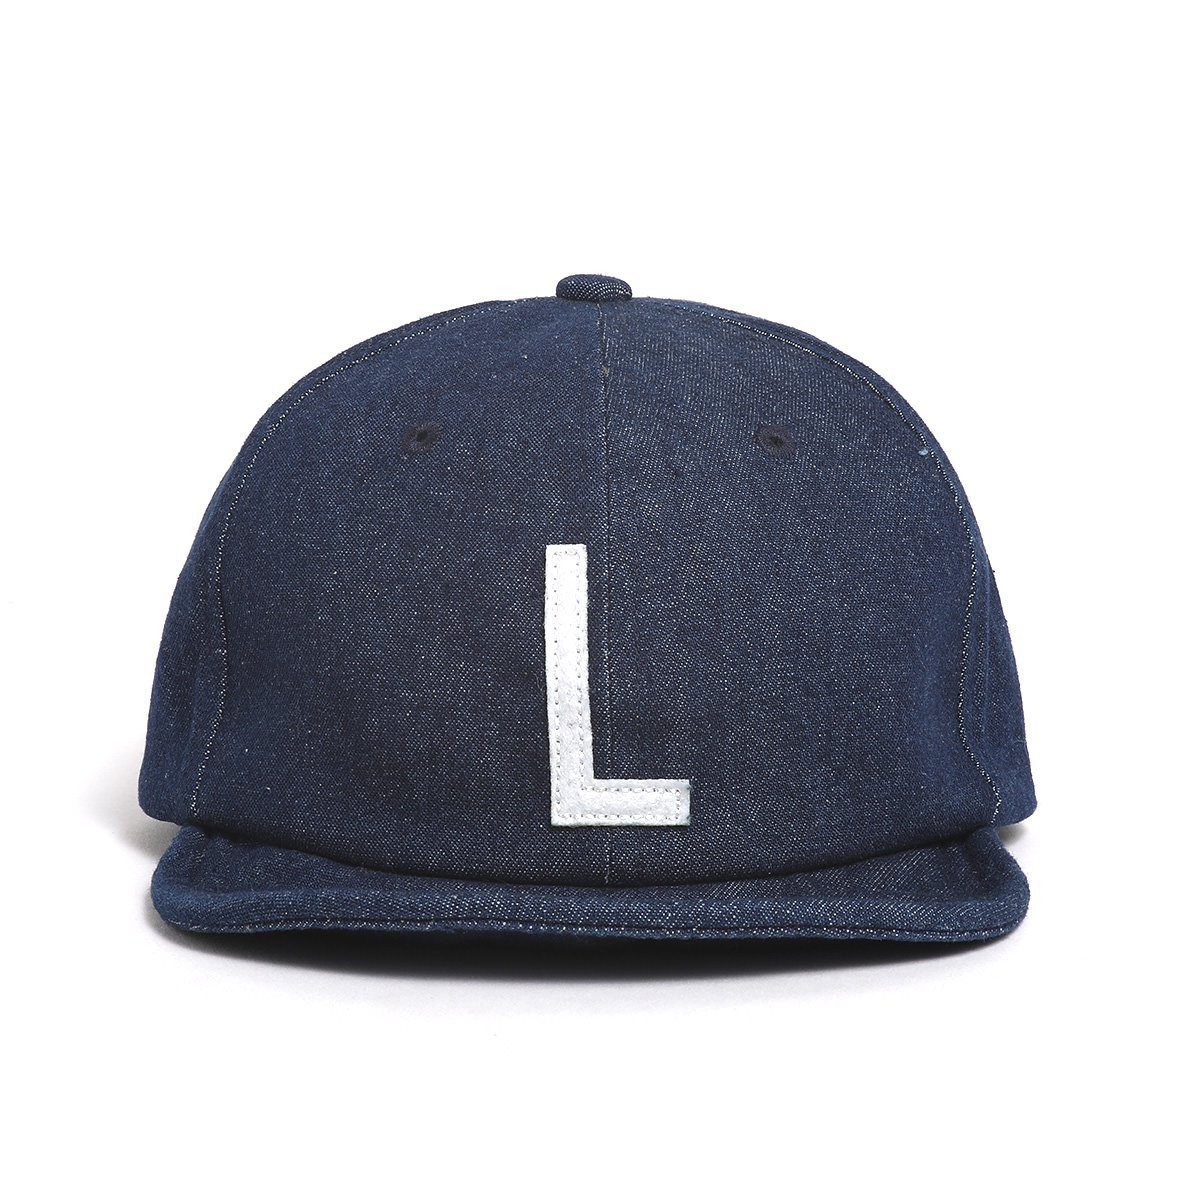 AtoZ Denim Logo CAP 詳細画像5